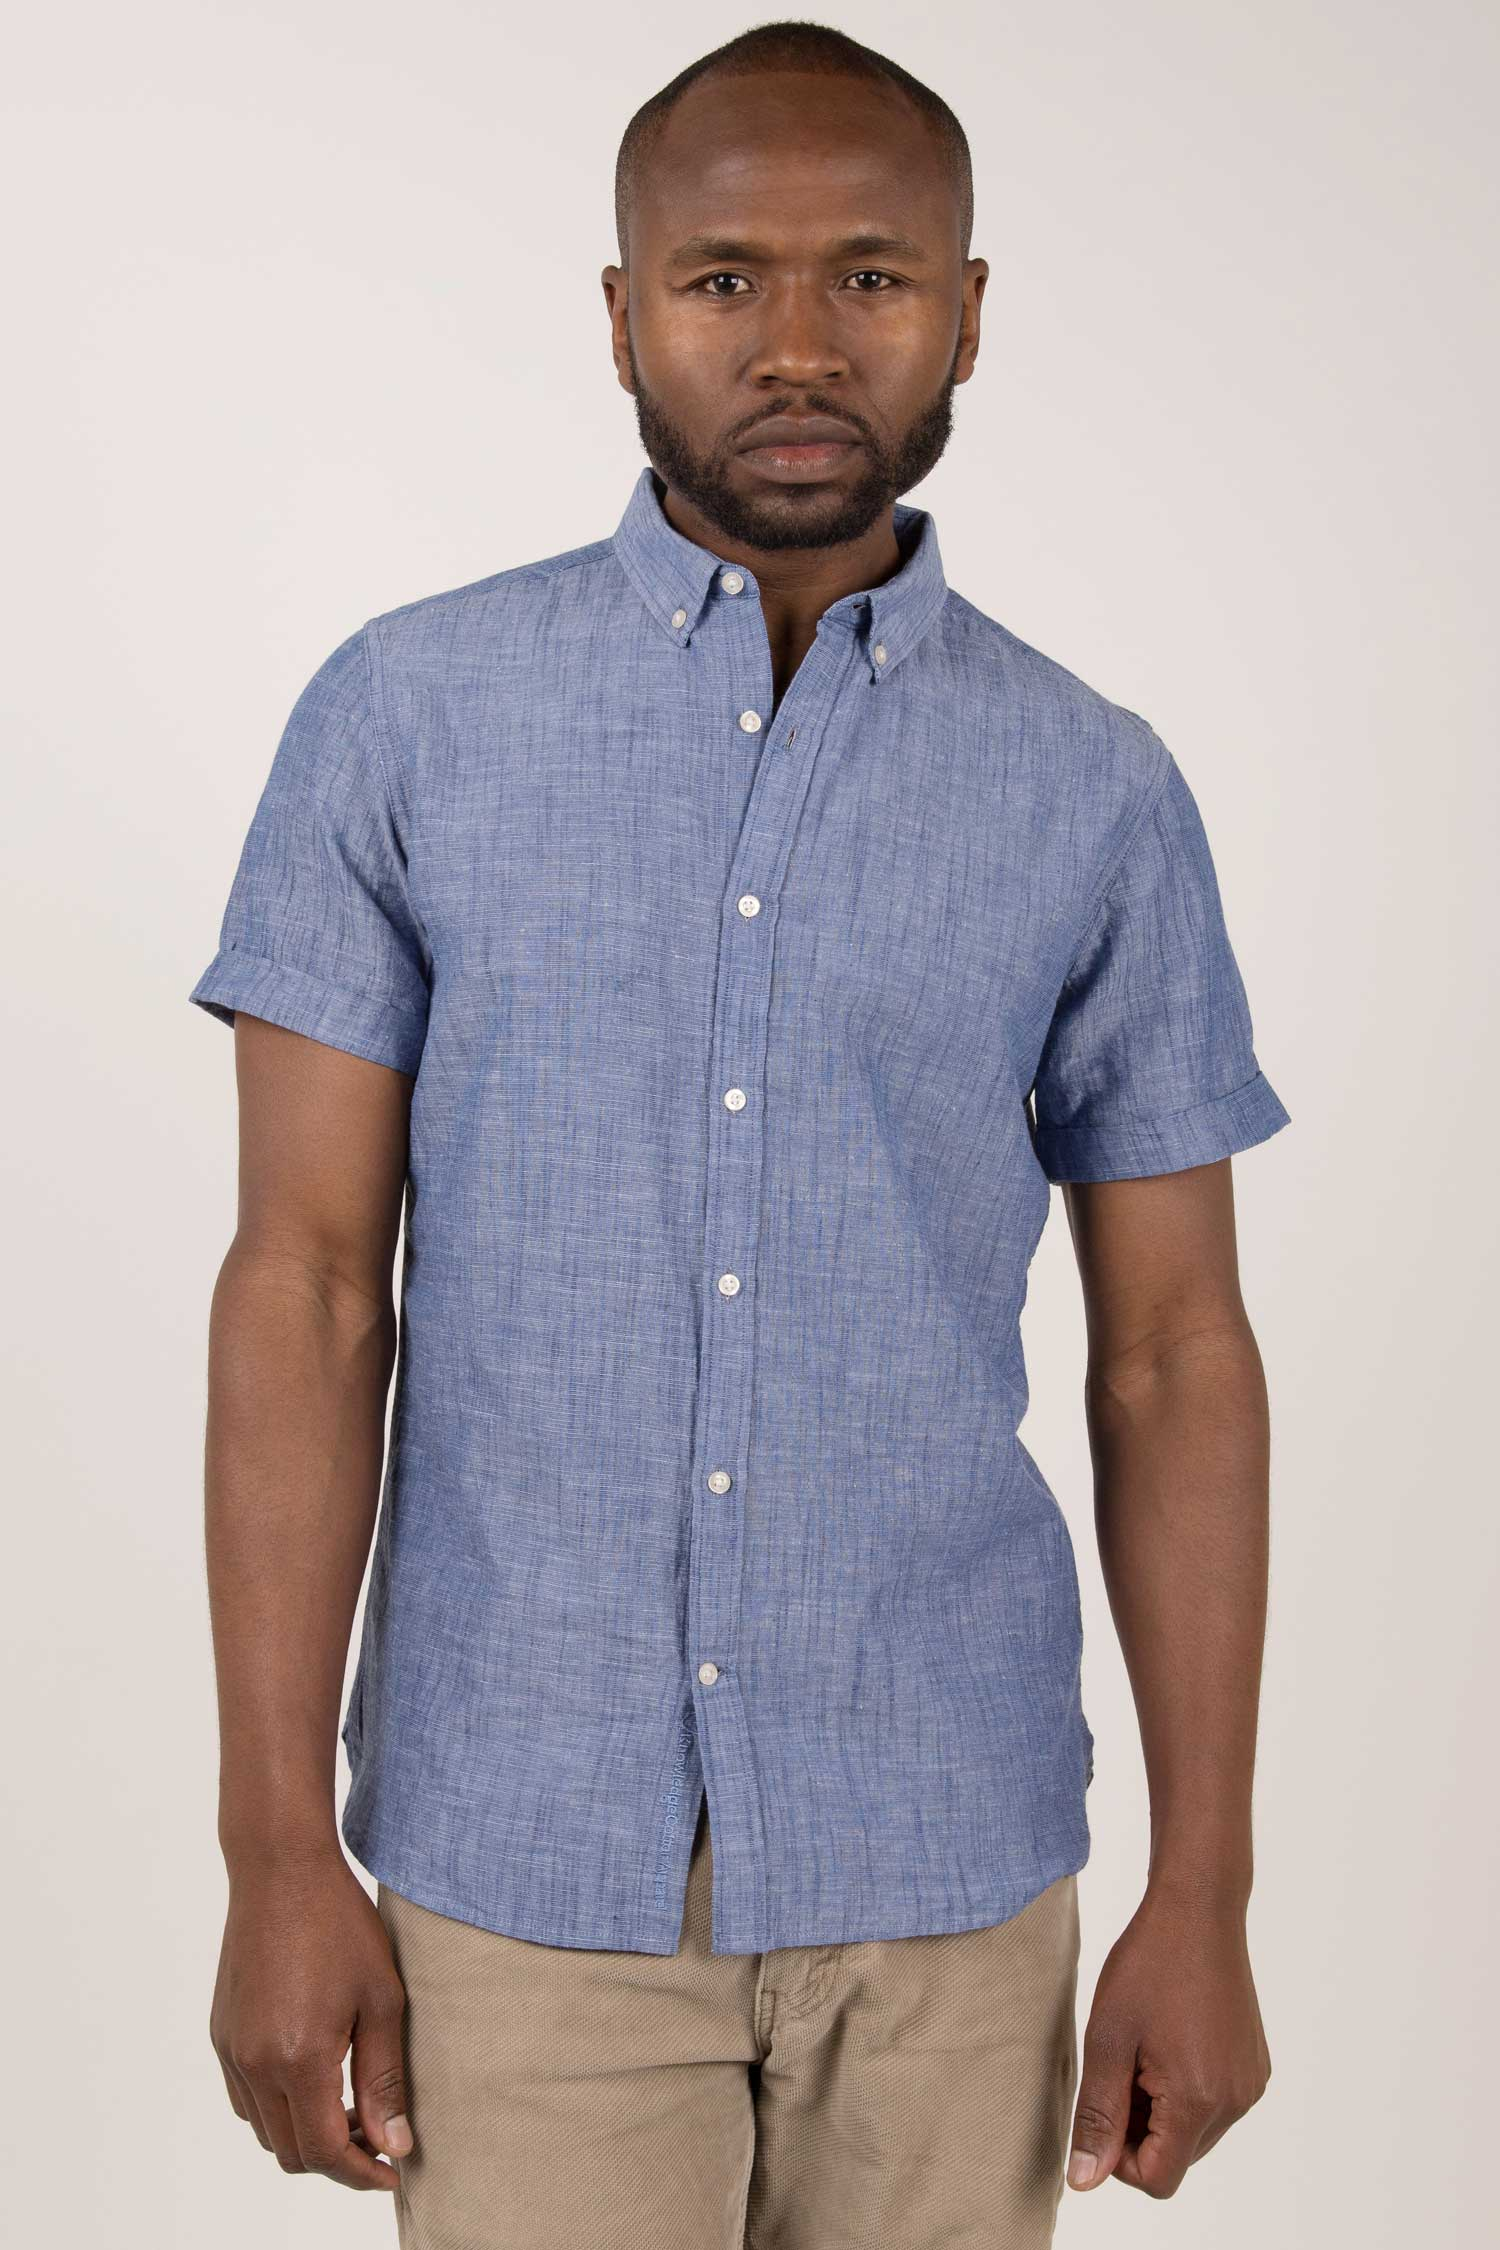 Shirt Sleeved Basic Short Blue Men vNmn8w0